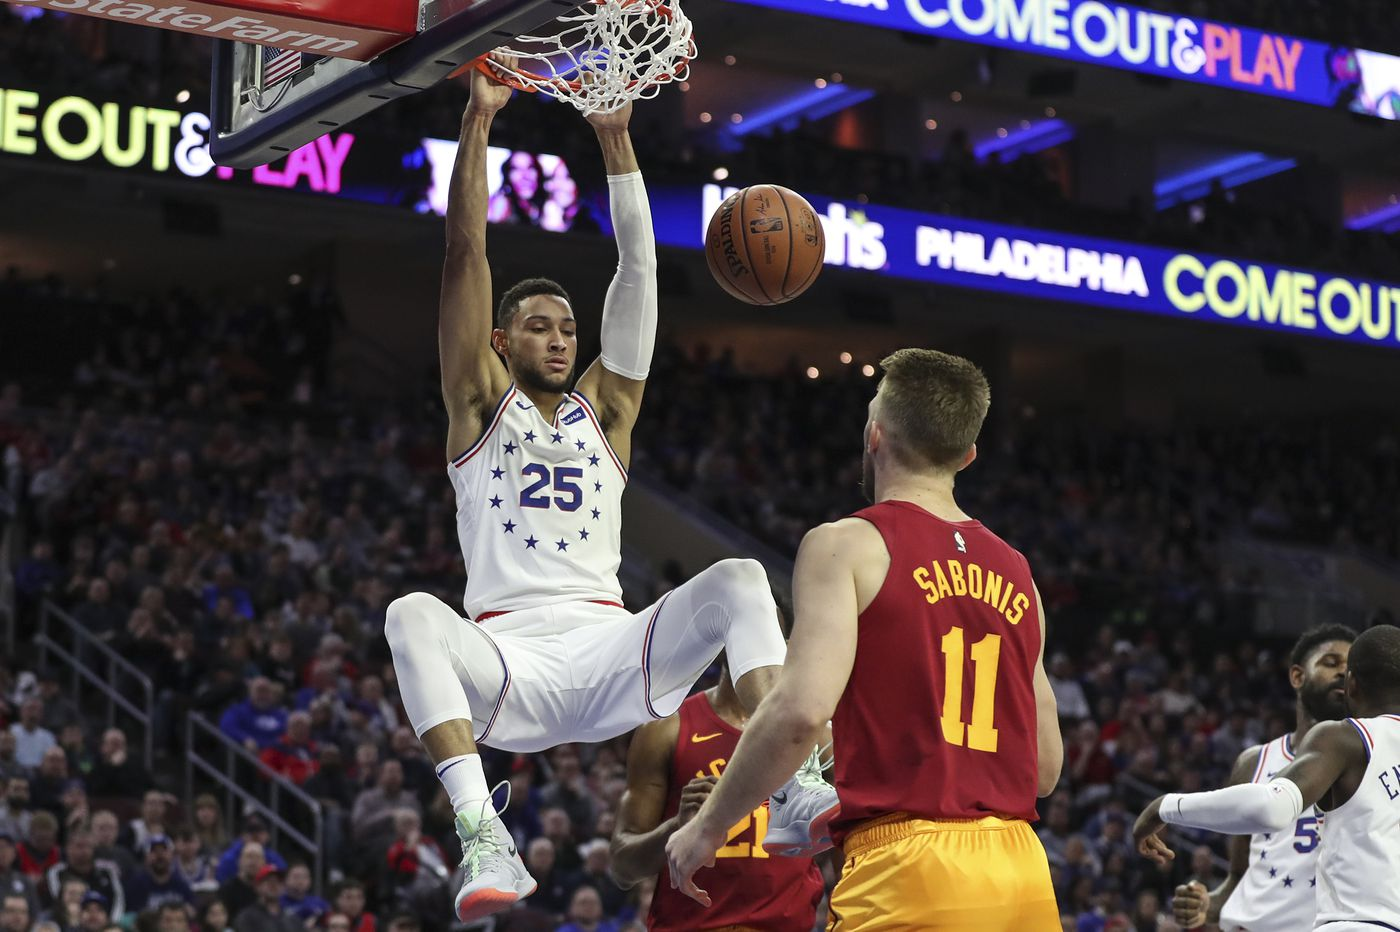 Sixers' Ben Simmons unbothered by Kobe Bryant's comments